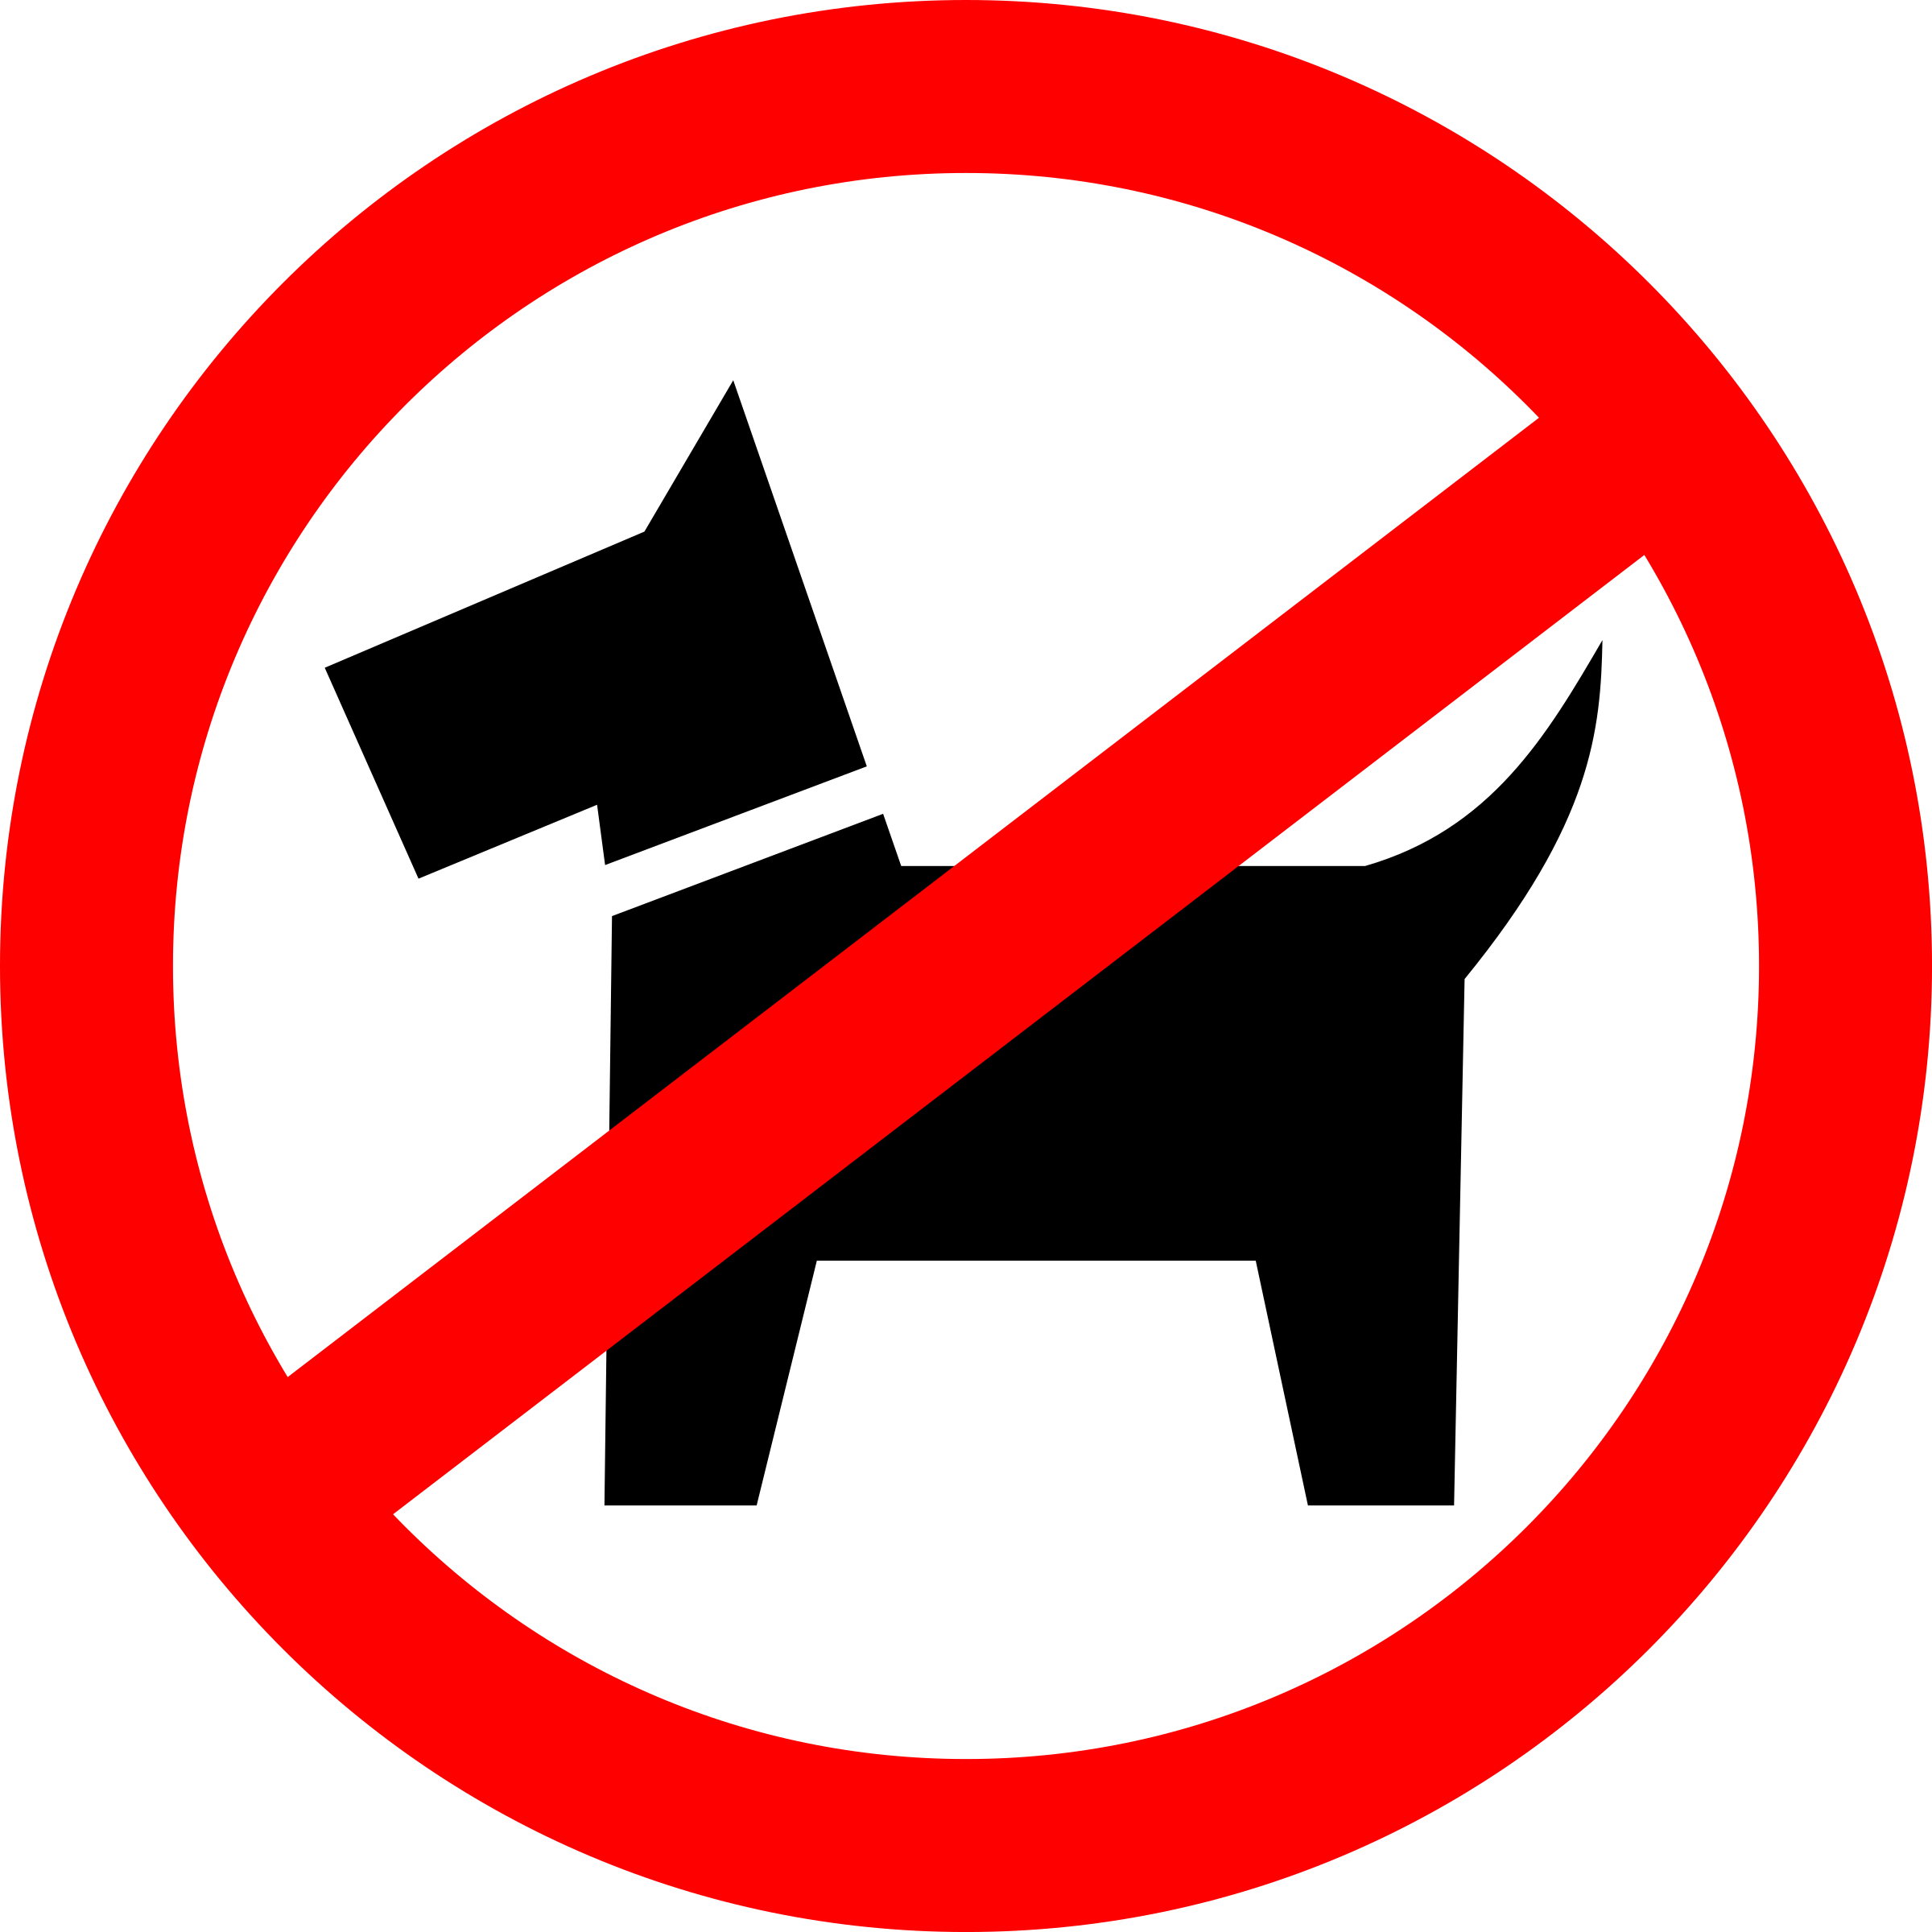 Dog walking is prohibited by rones